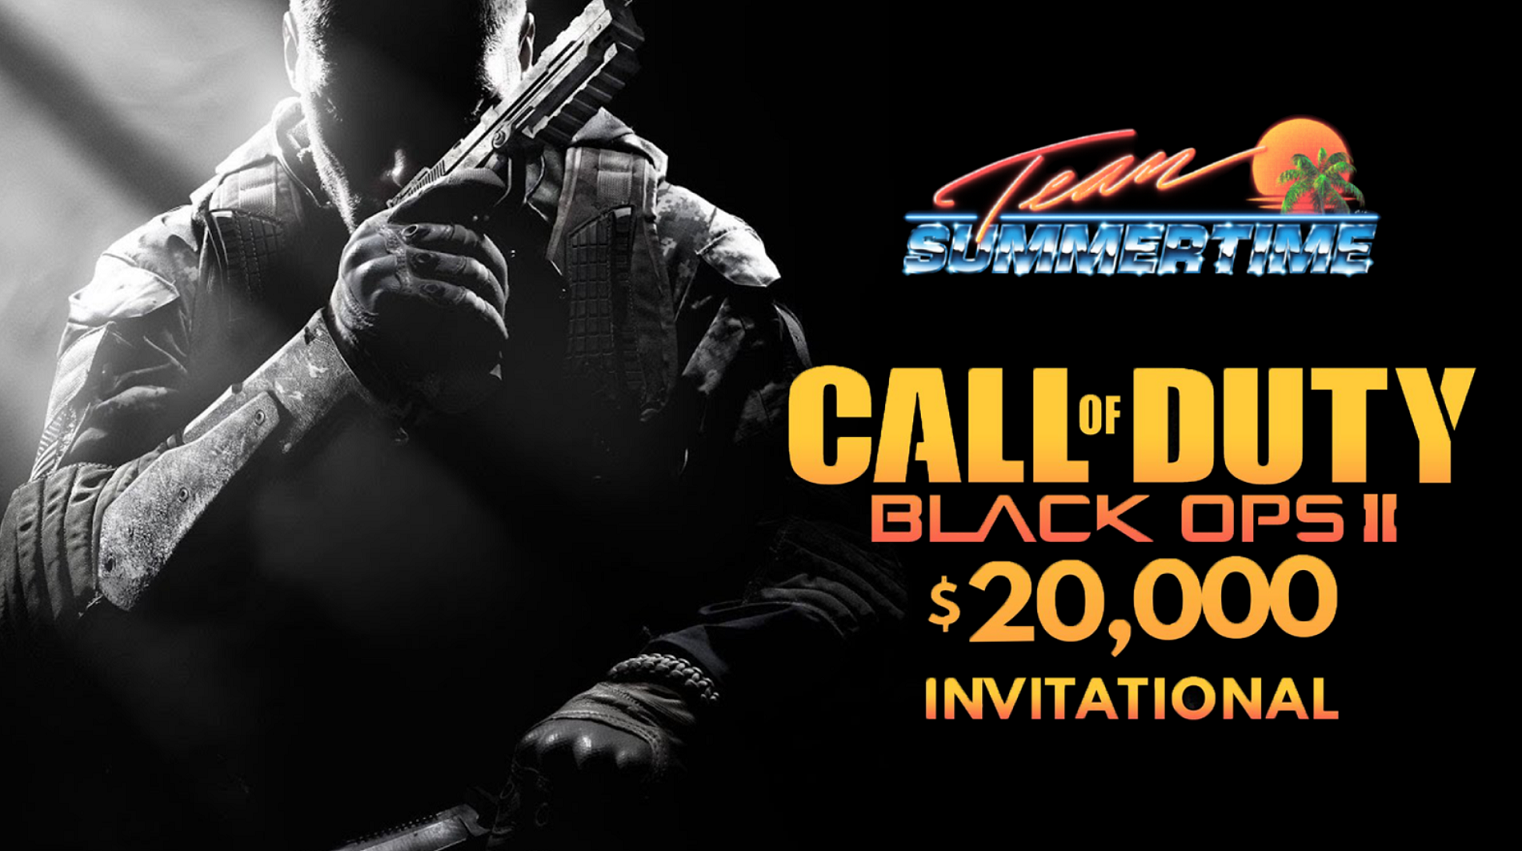 Black Ops 2 throwback tournament